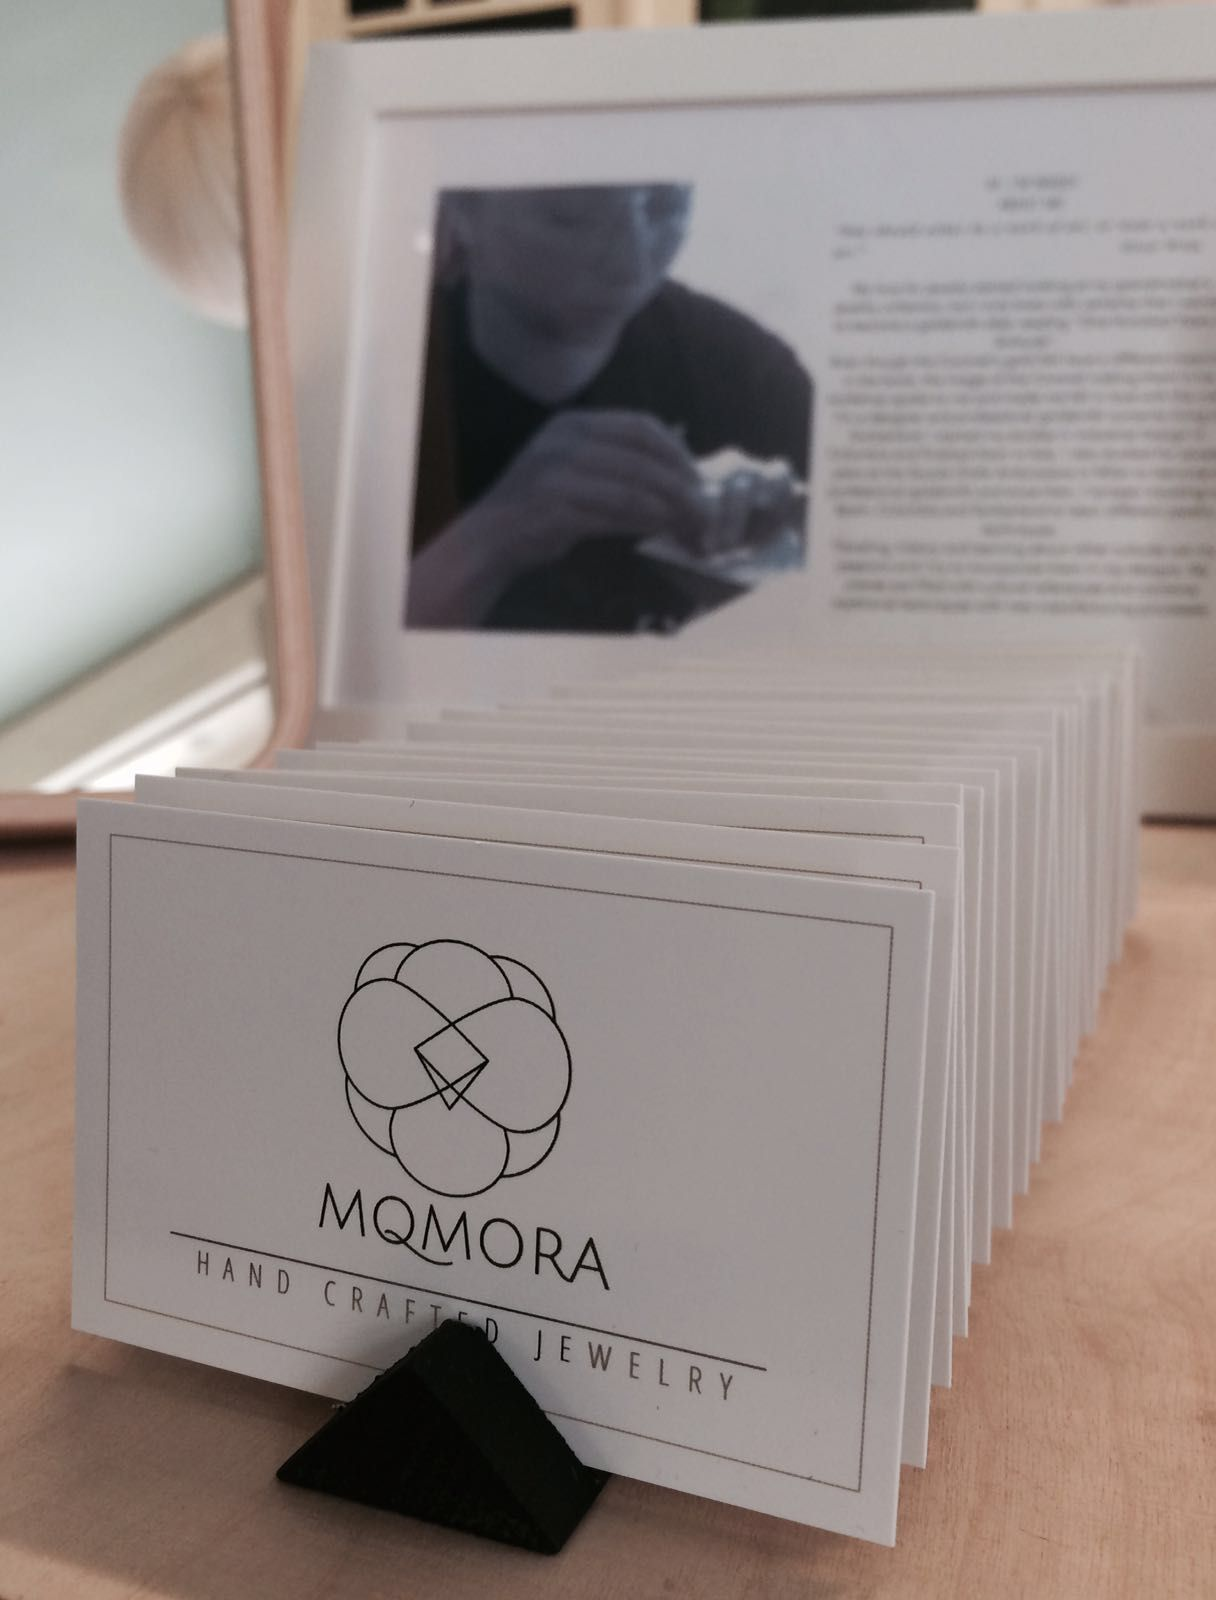 Mqmora hand crafted jewelry based in basel switzerland business mqmora hand crafted jewelry based in basel switzerland business cards colourmoves Image collections